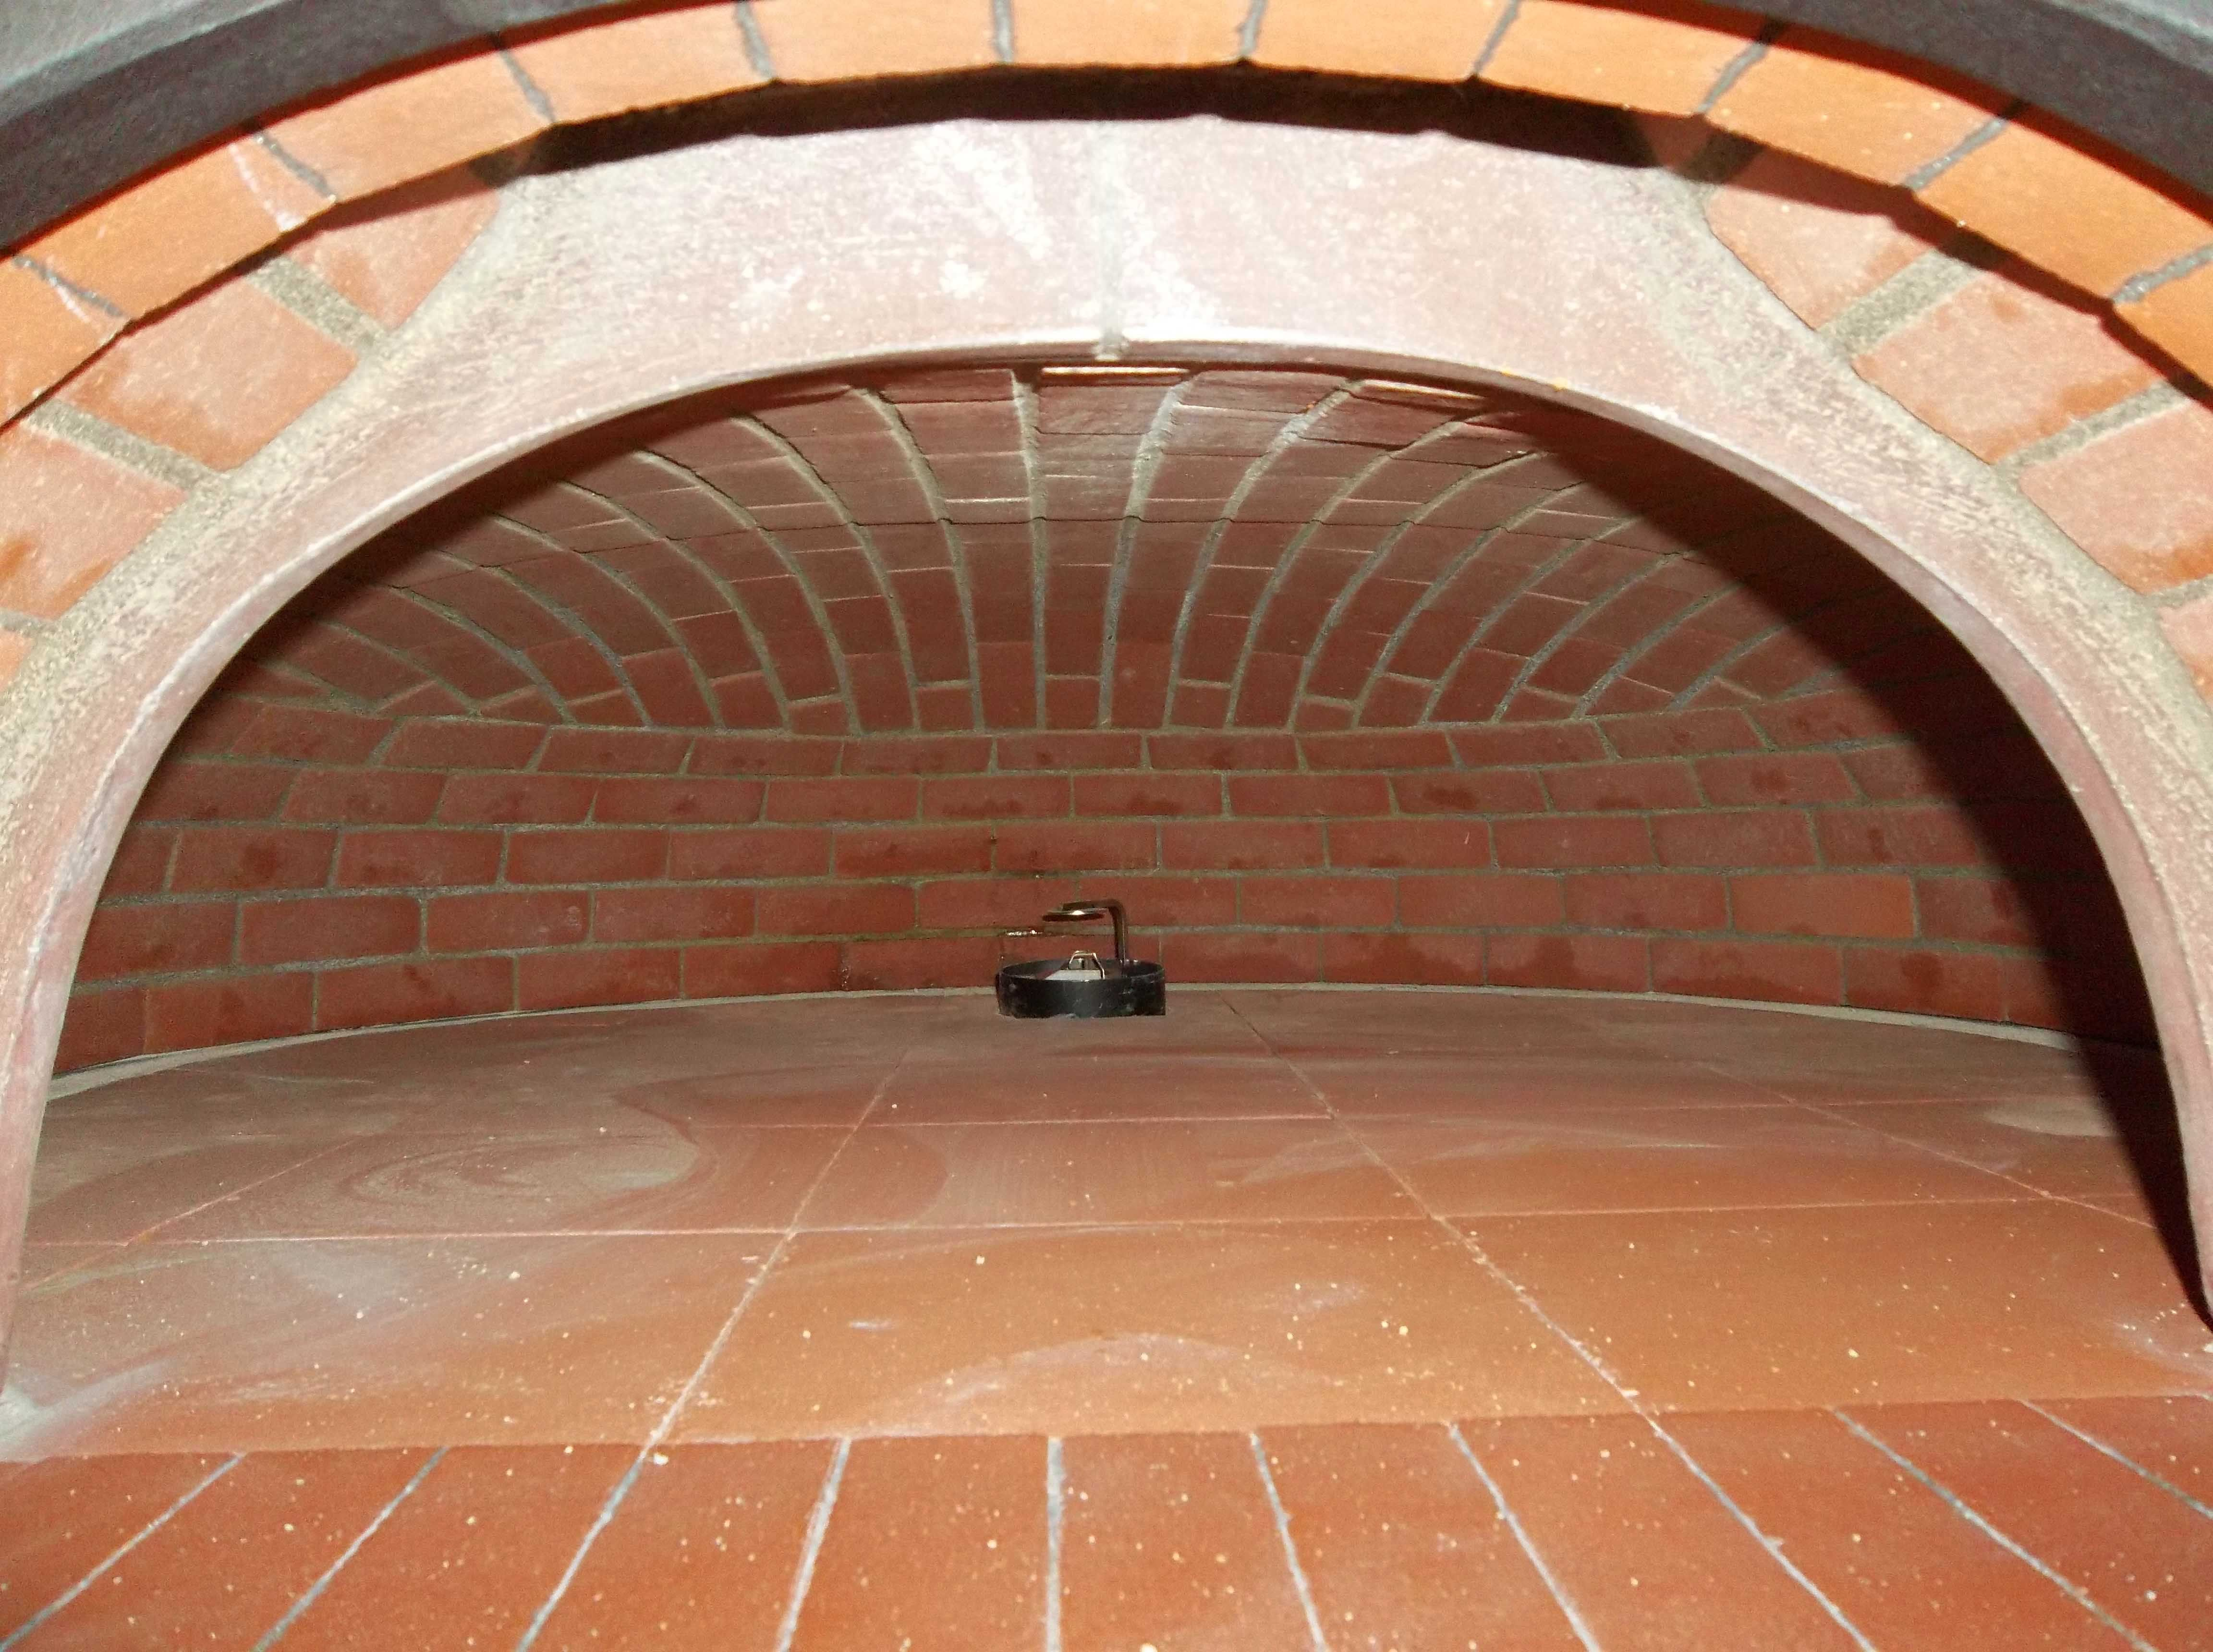 Fully Bricked Oven Can Be Used For Making Pizza Bread Anything You D Like Fully Bricked Oven Wood Hornos De Ladrillo Hornos Para Pizzas Estufas De Lena